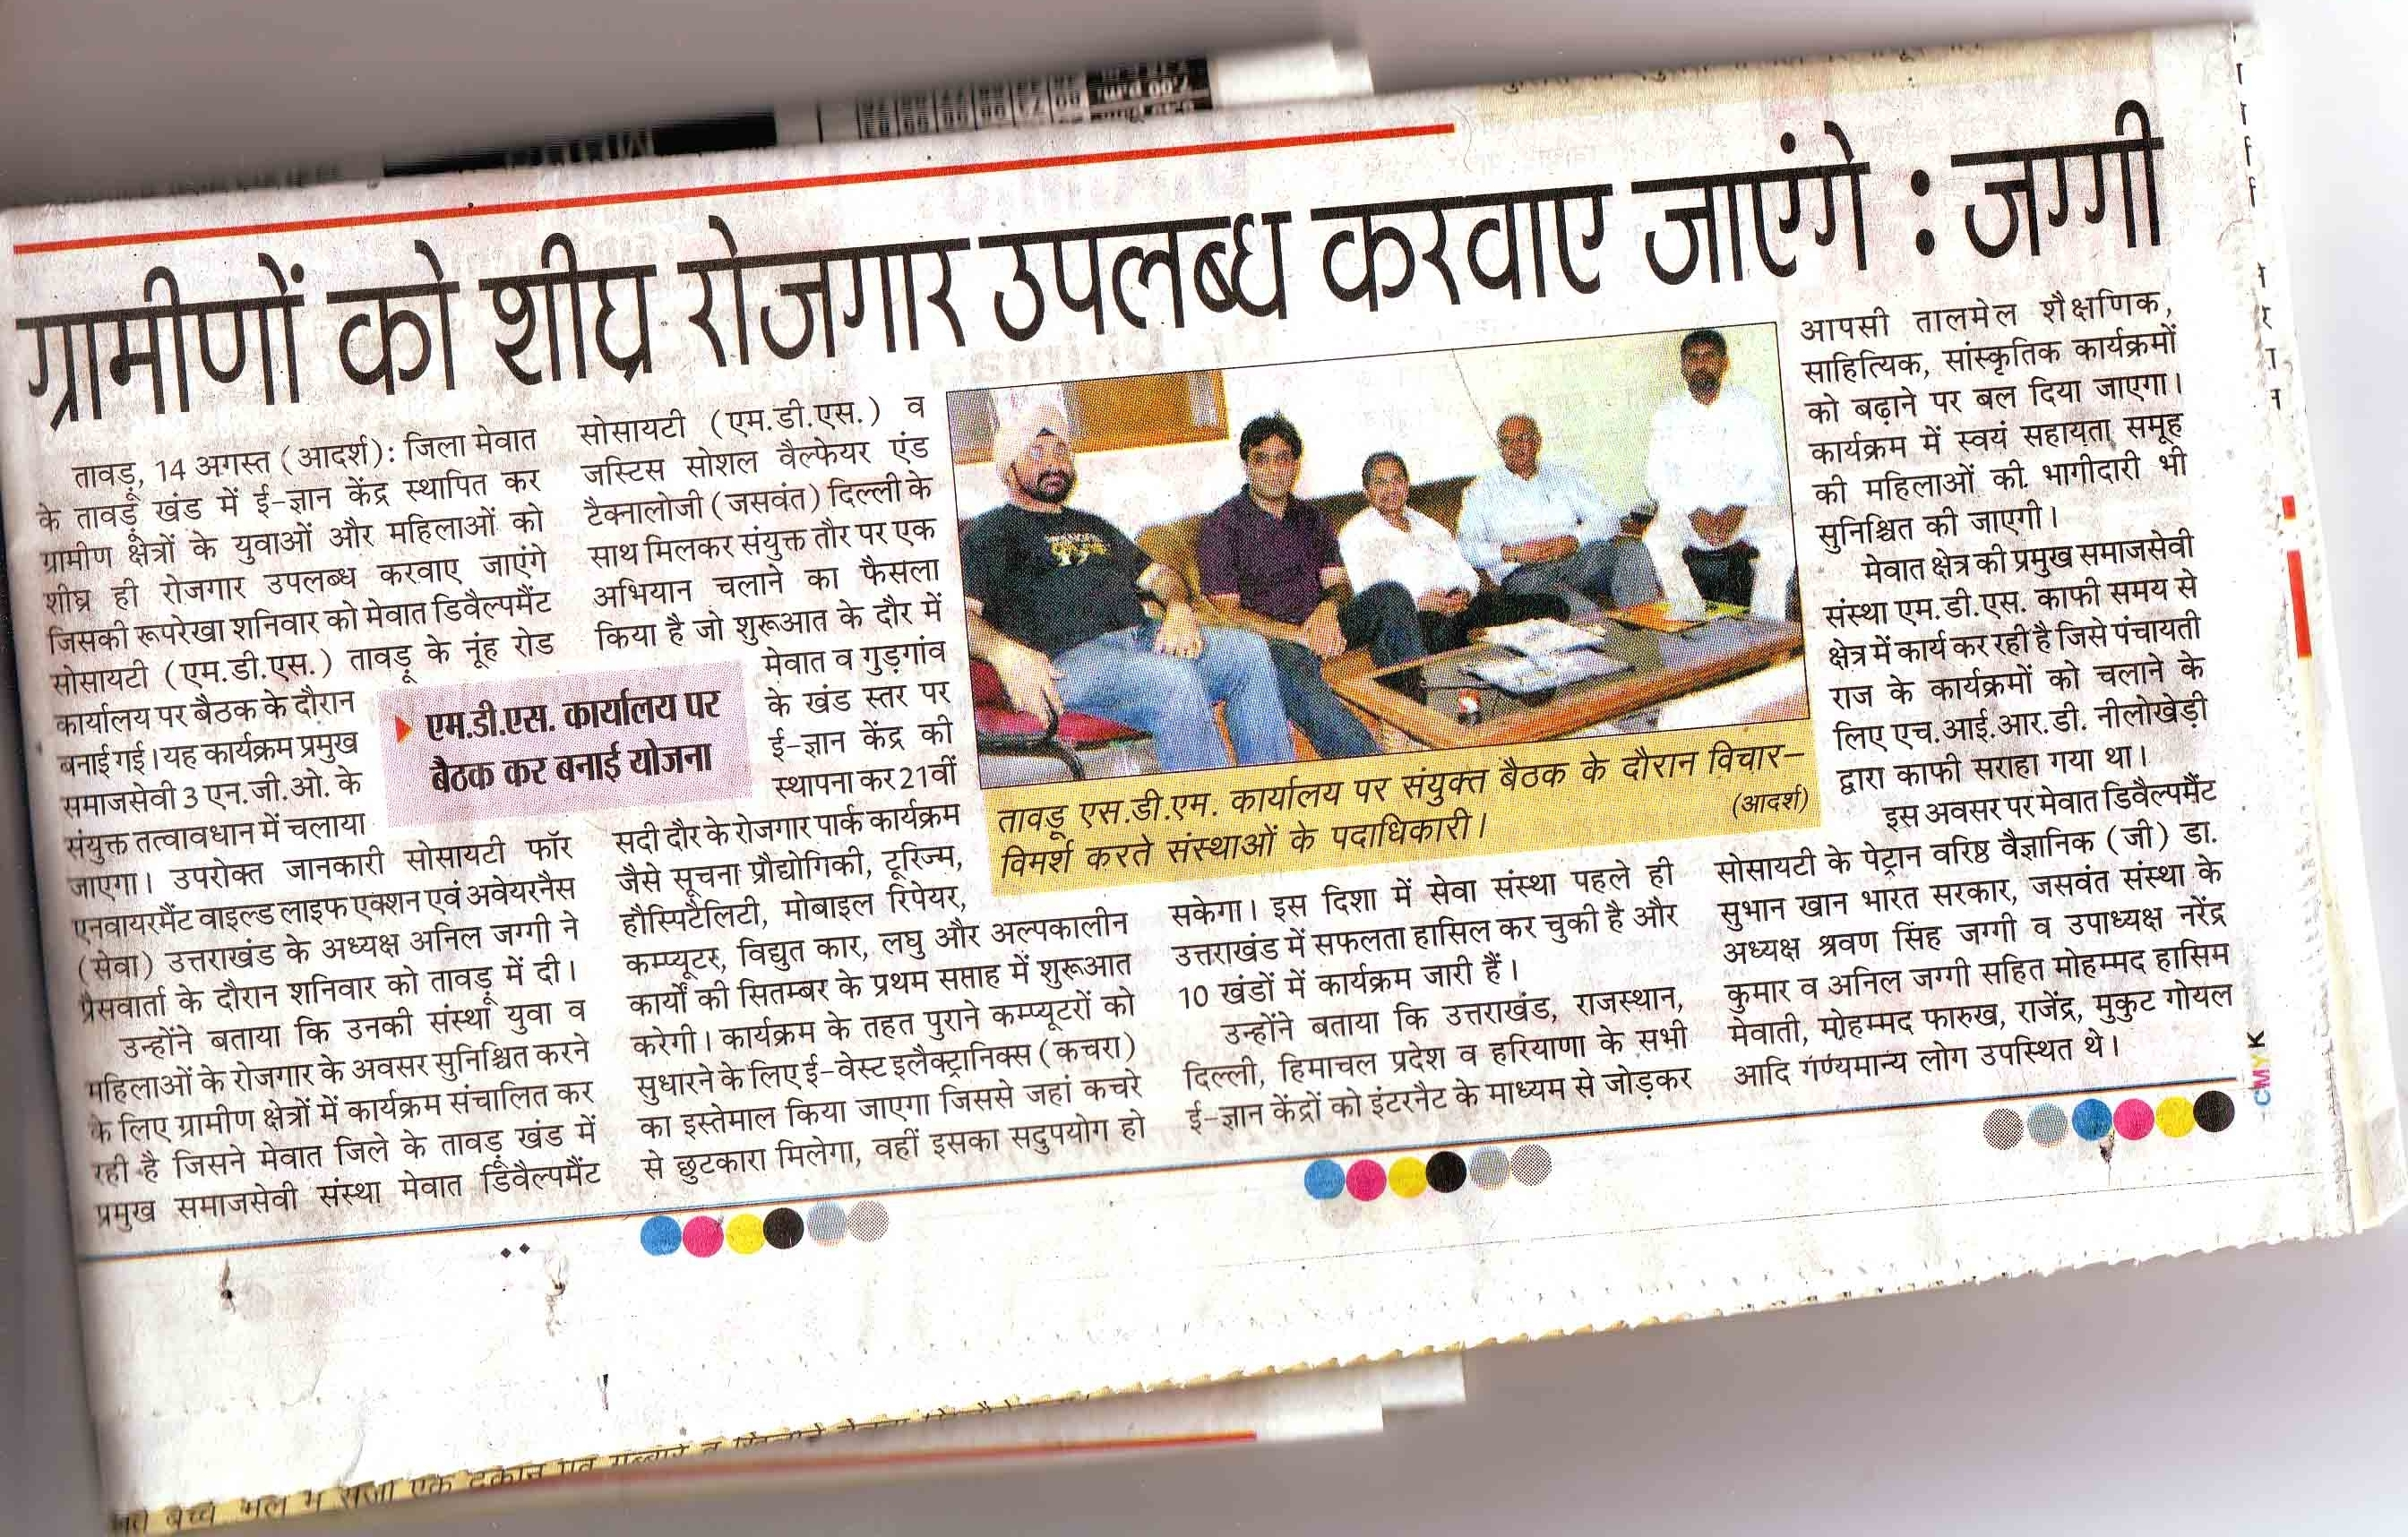 A news report on E-learning Centres